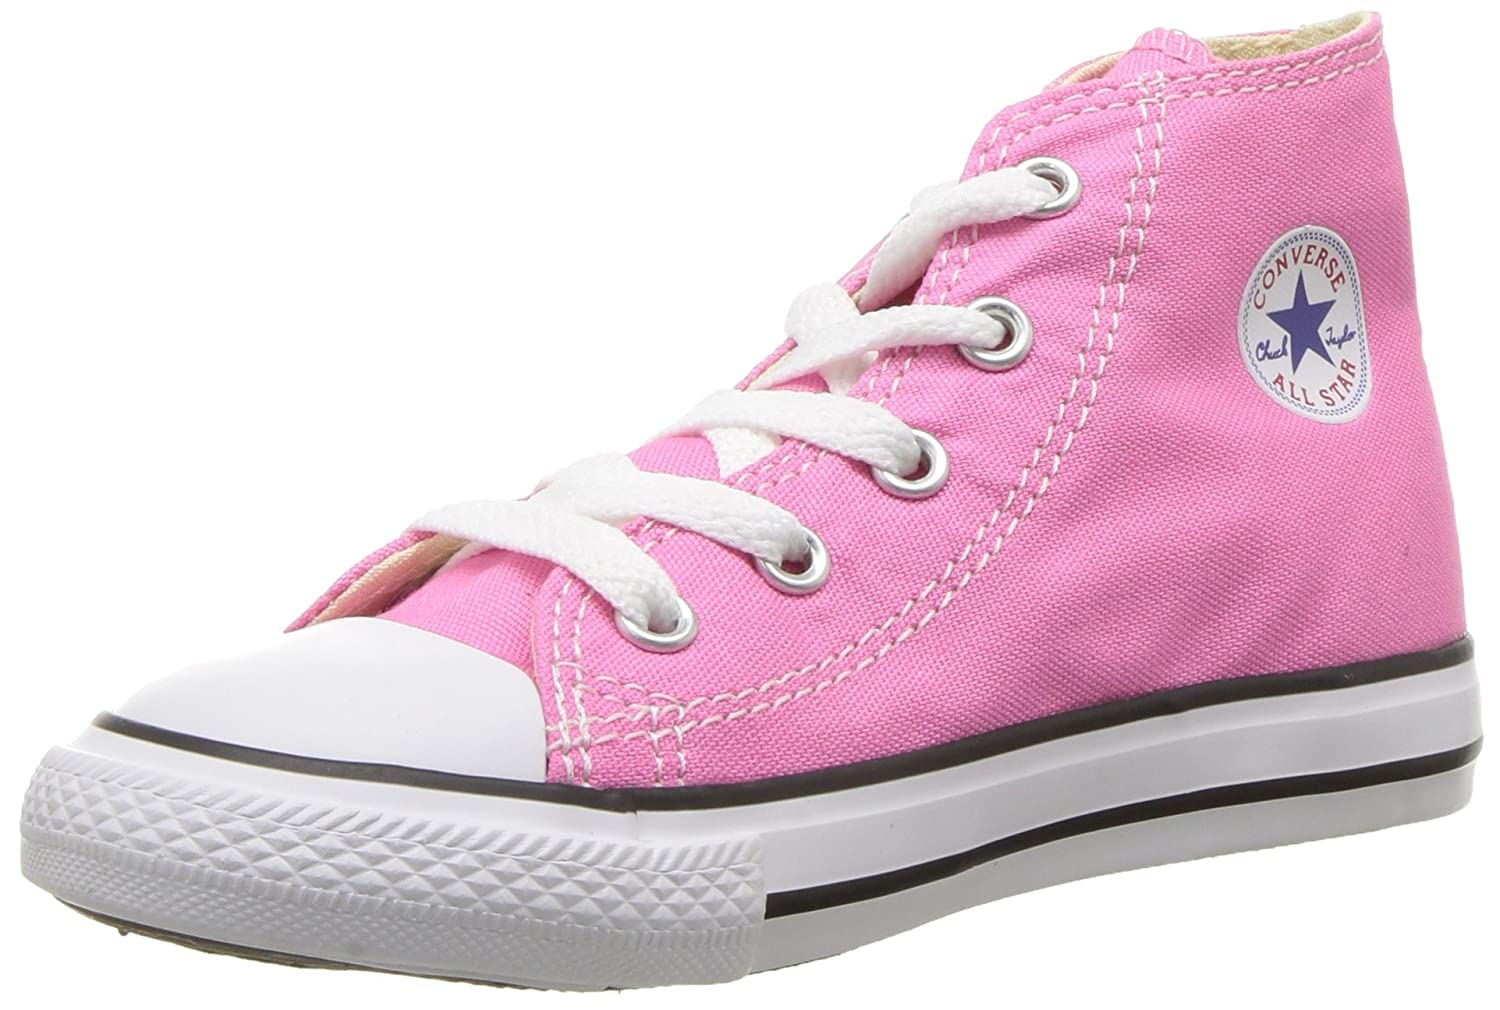 Converse Kids' Chuck Taylor All Star Canvas High Top Sneaker B000EDGH7I 6 M US Toddler|Pink